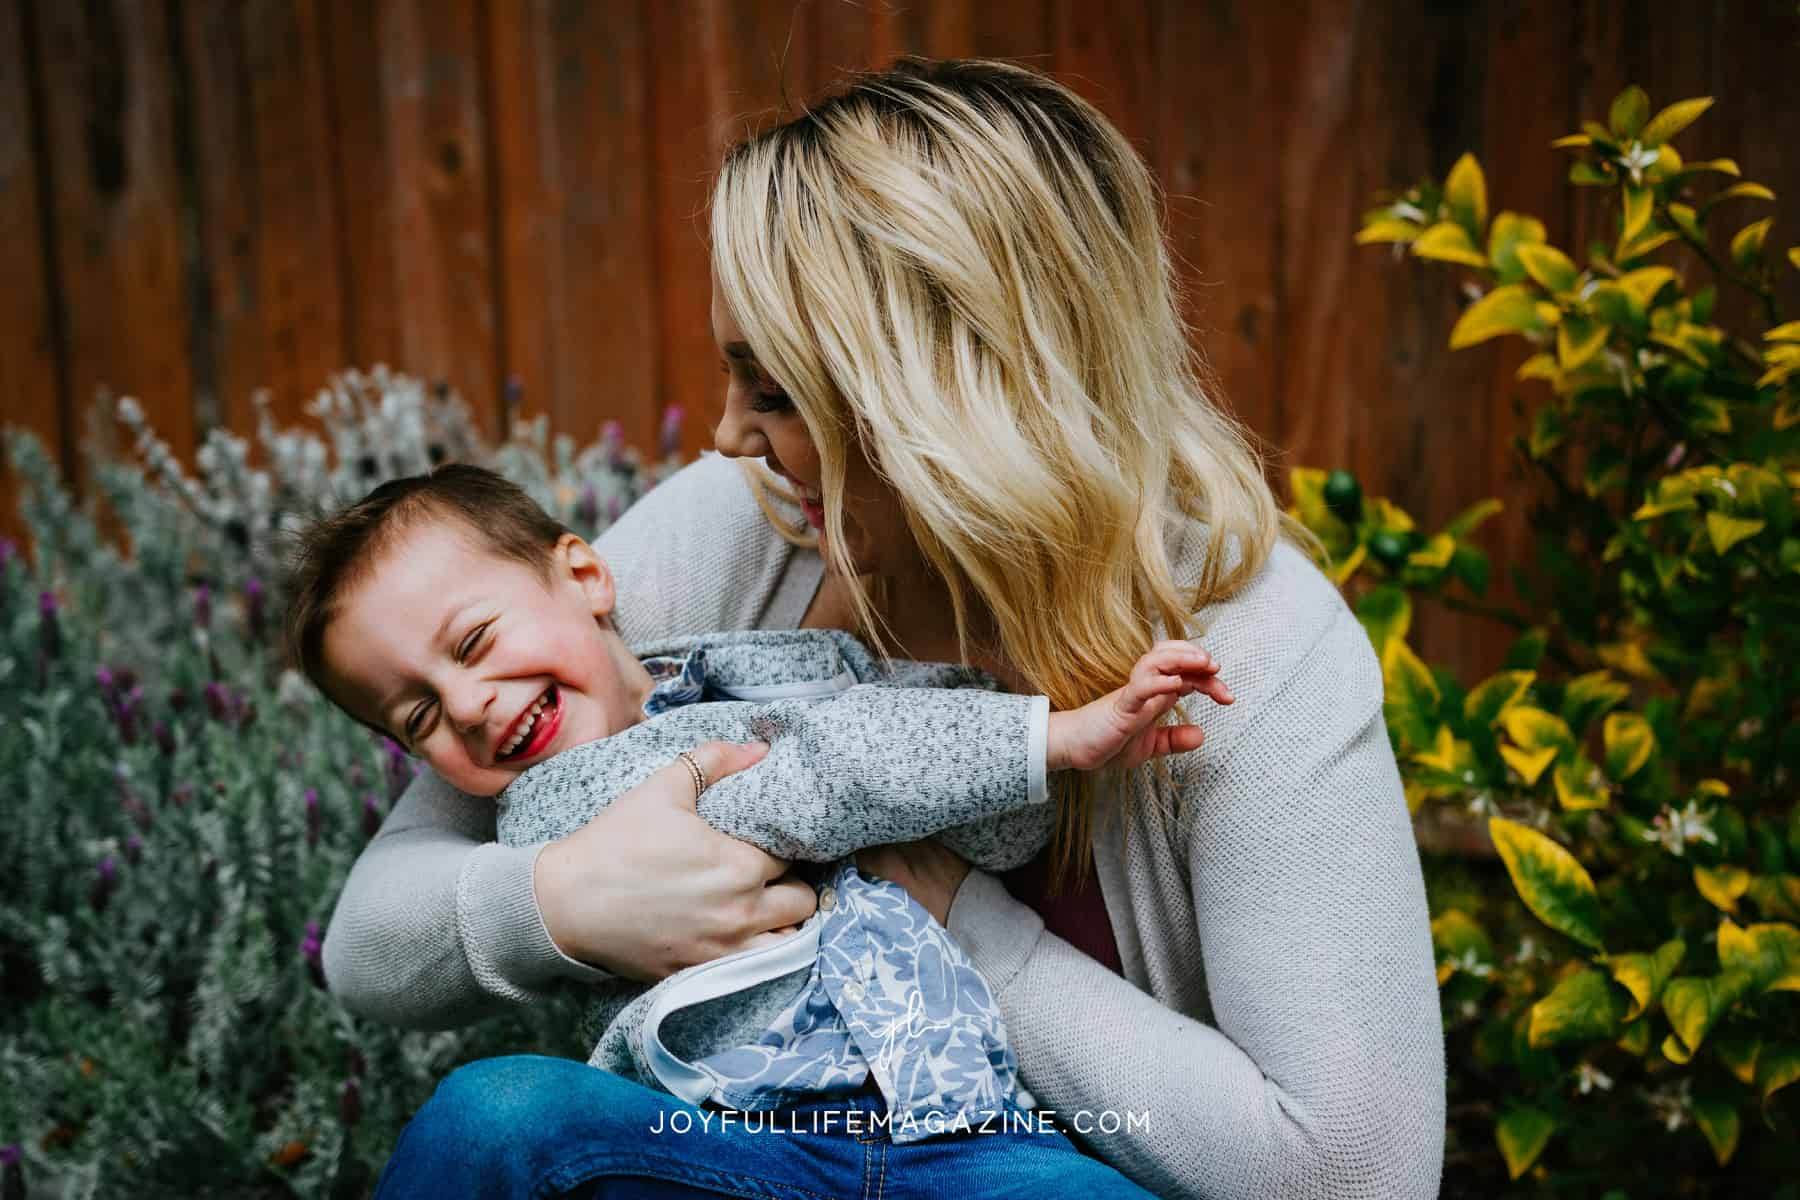 Mom holding toddler son and both laughing